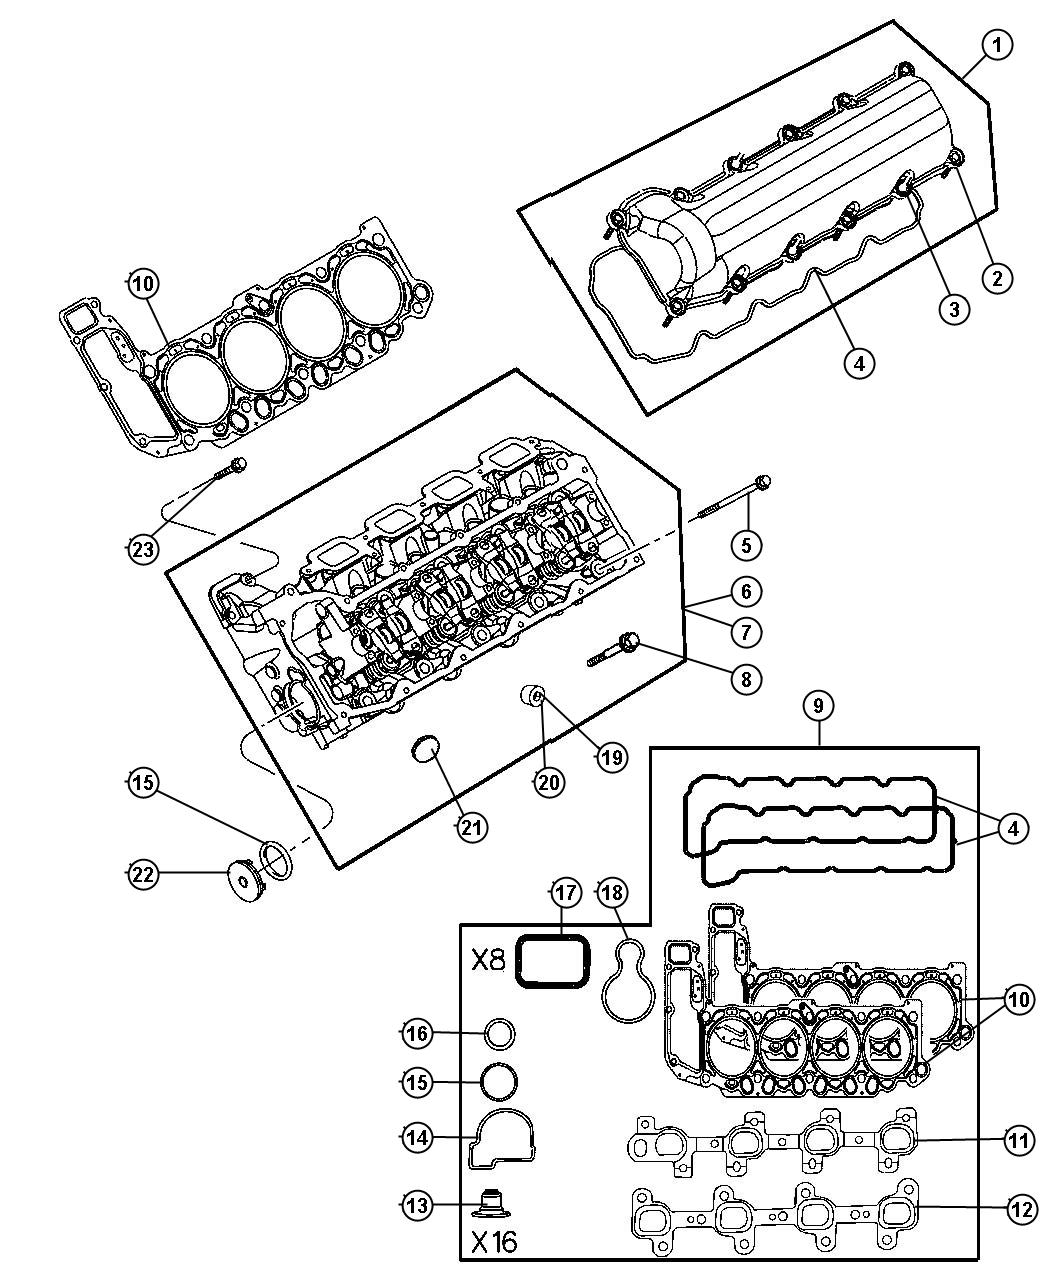 Cylinder Head 4.7L [4.7L V8 MPI Engine]. Diagram